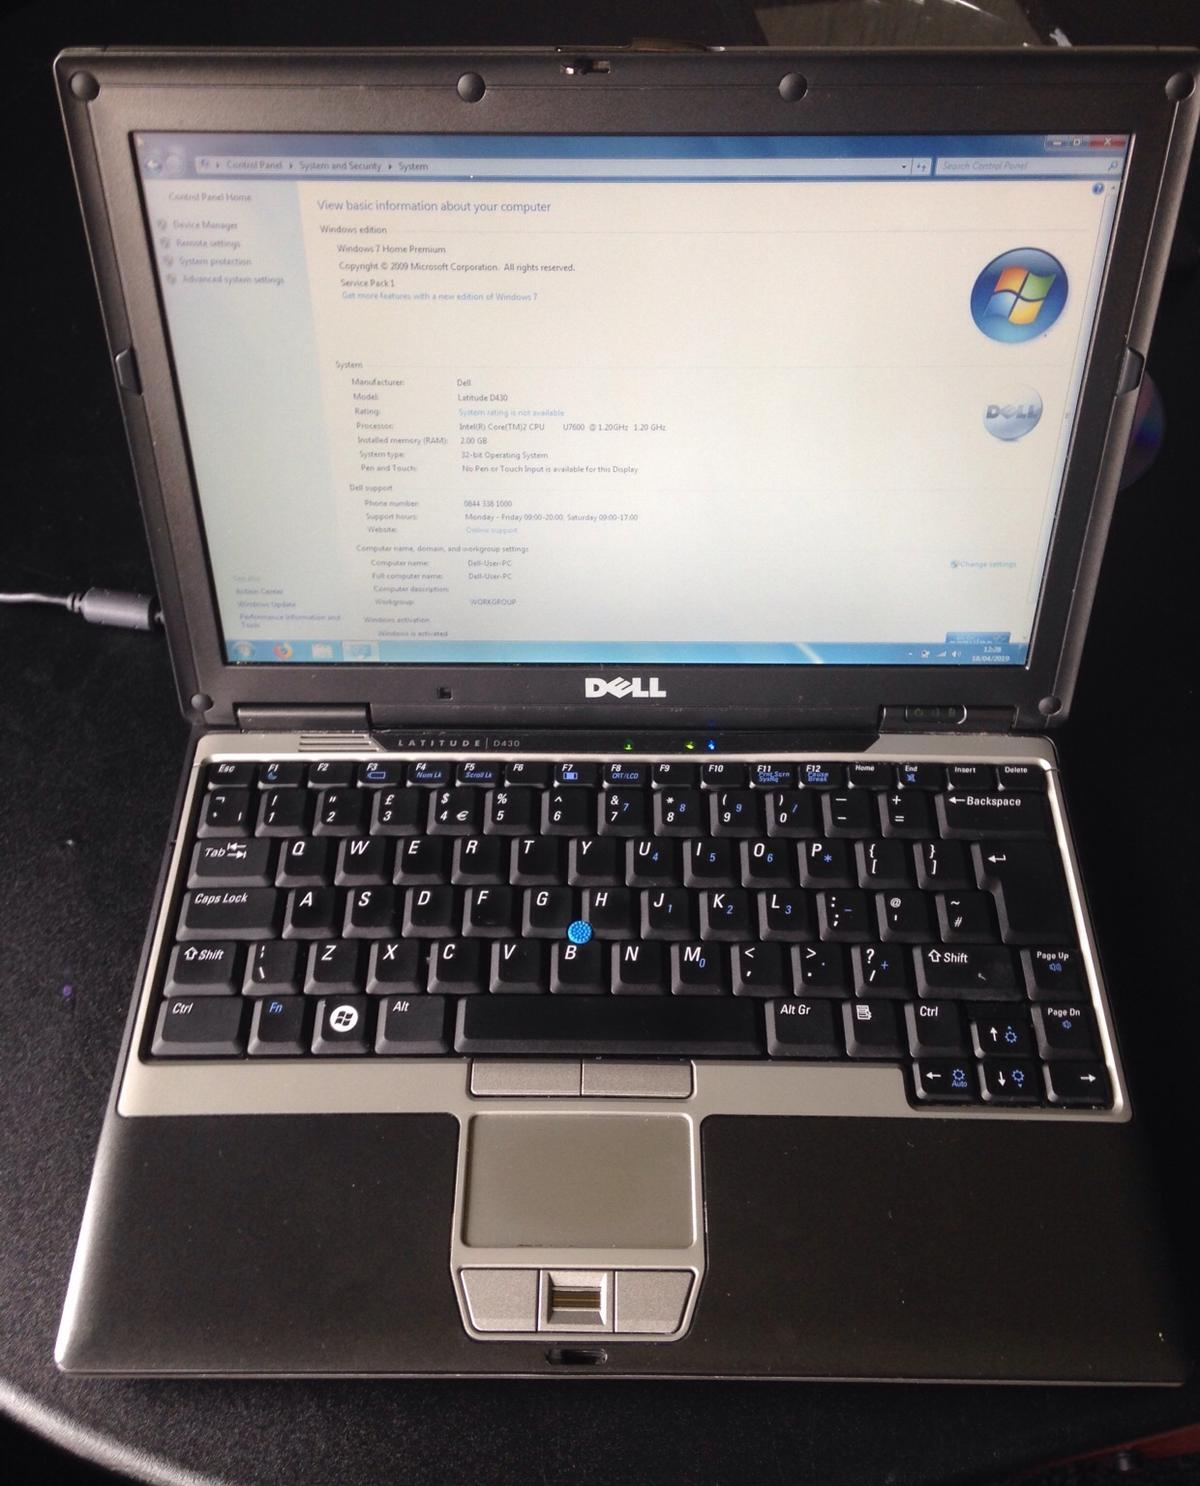 Dell Latitude D430 12 1 Laptop in B11 Birmingham for £30 00